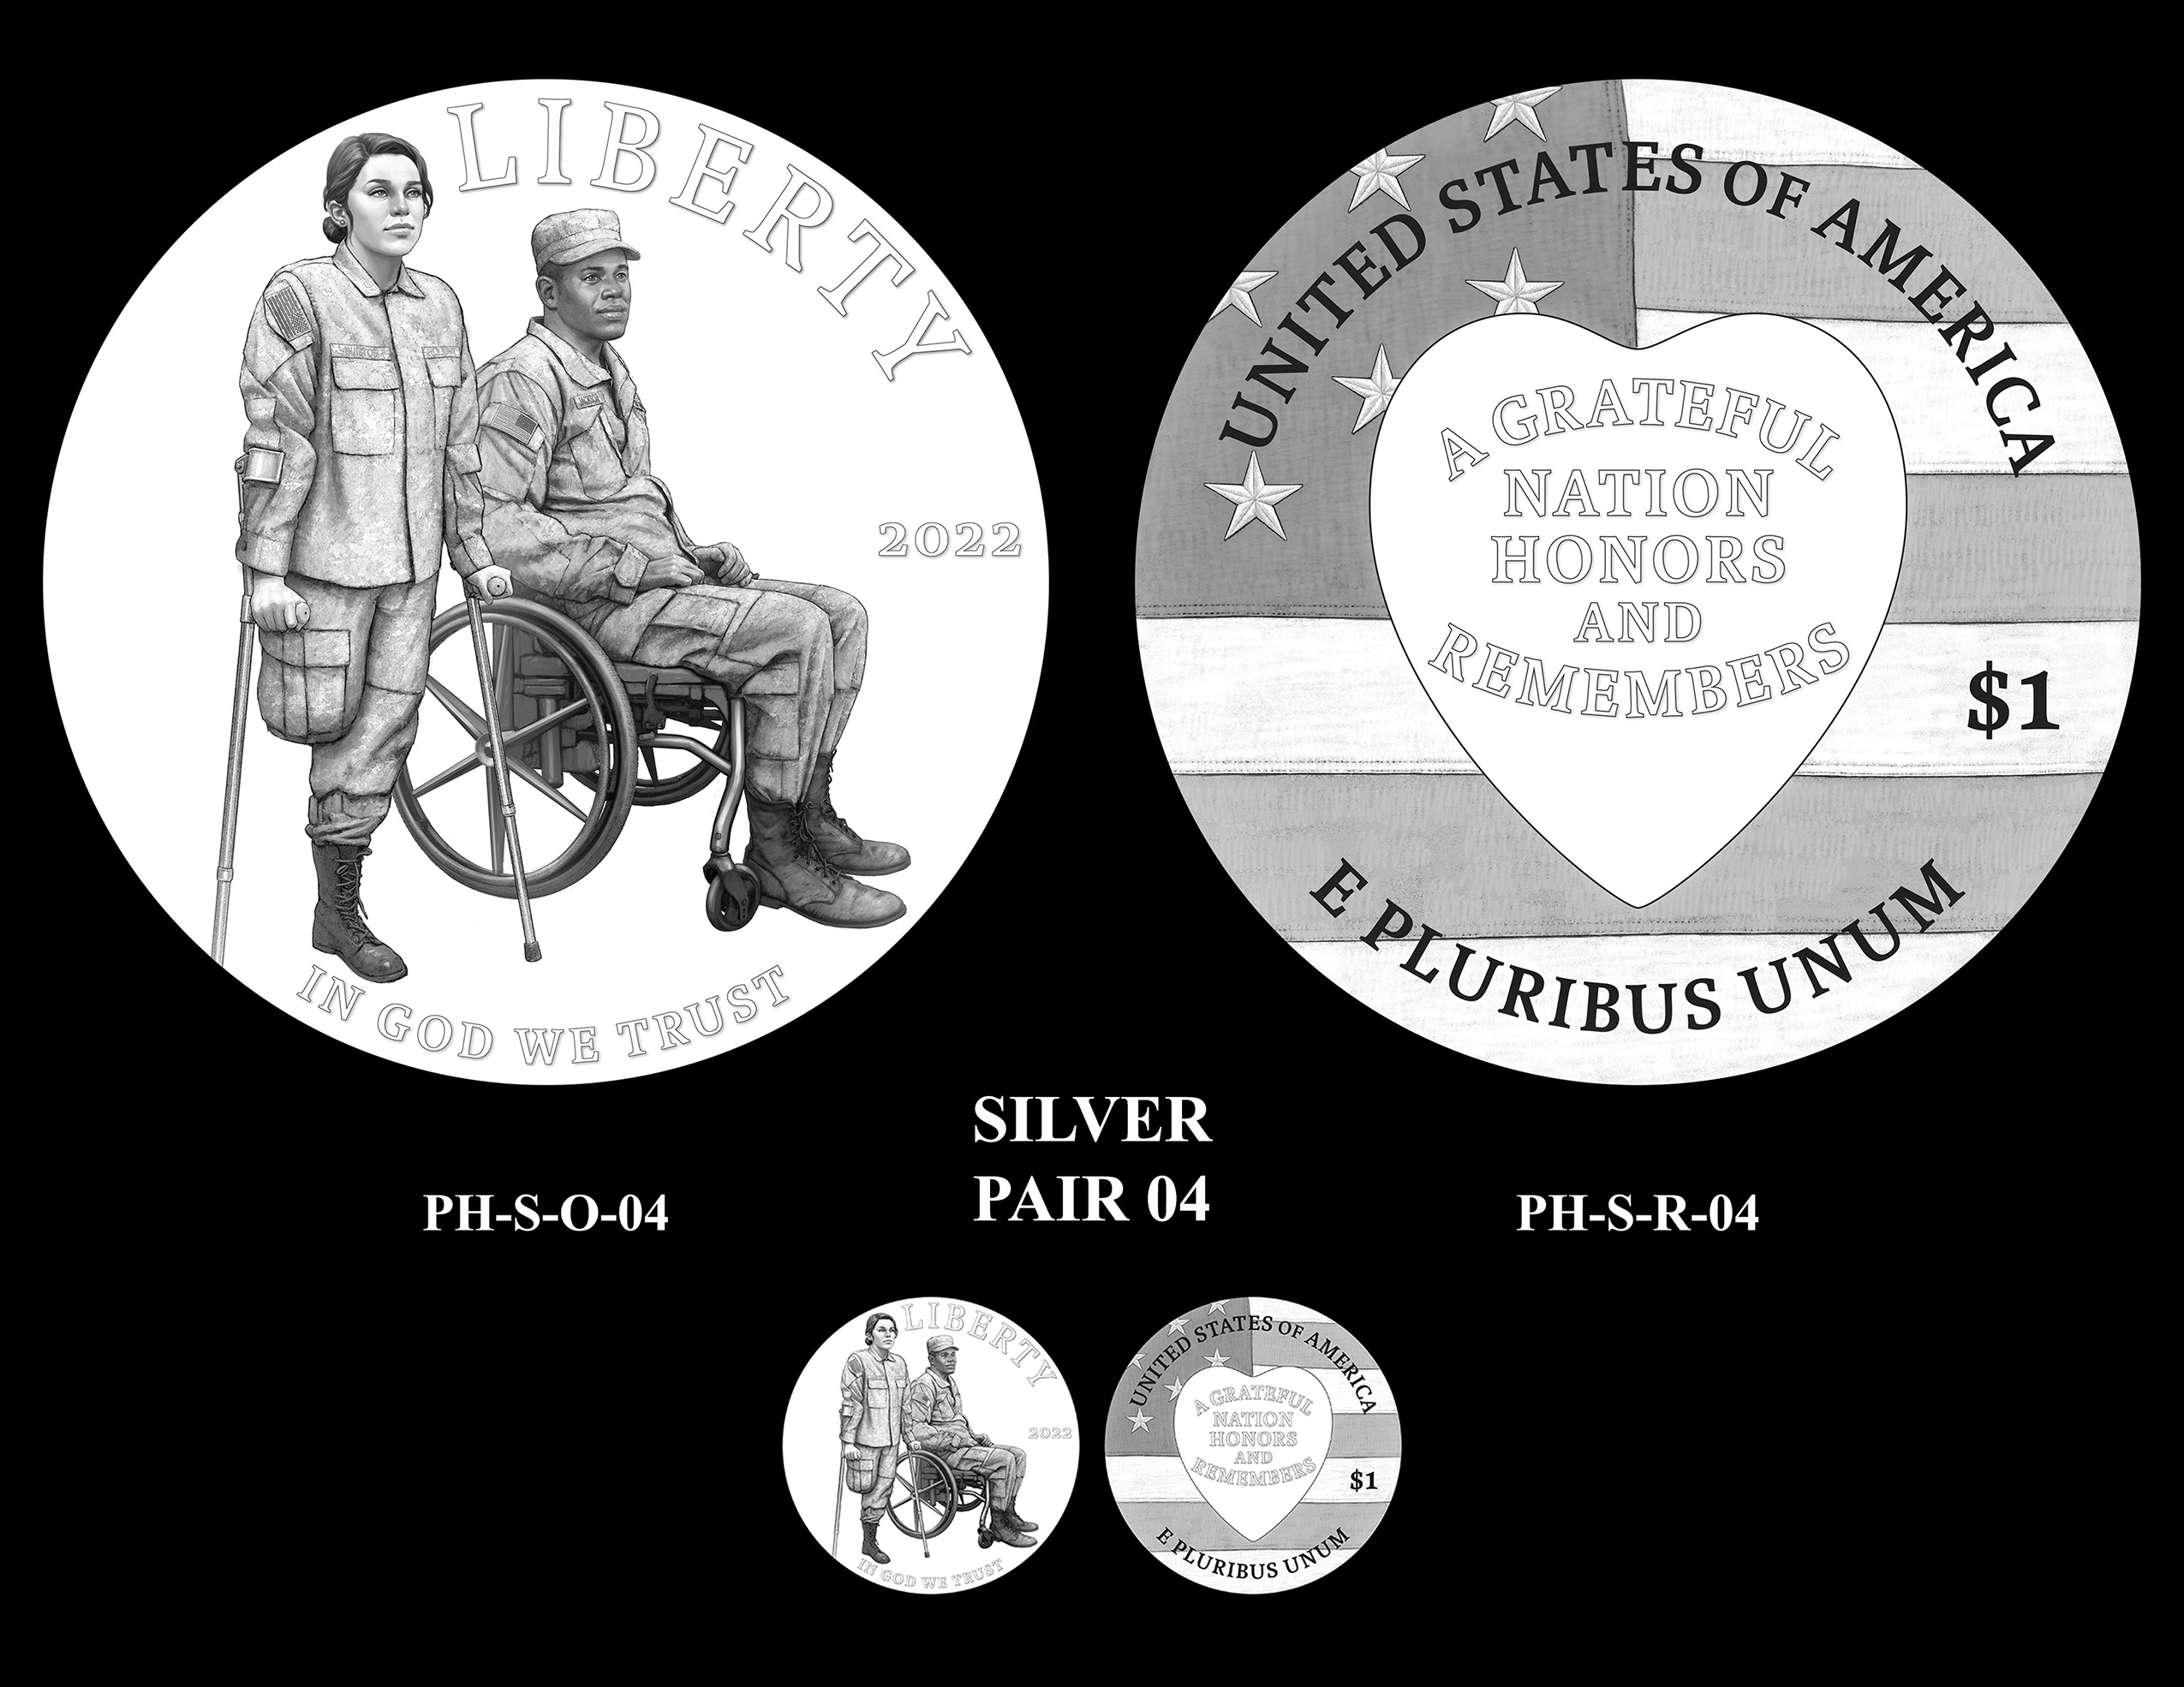 Silver Pair 04 -- National Purple Heart Hall of Honor Commemorative Coin Program